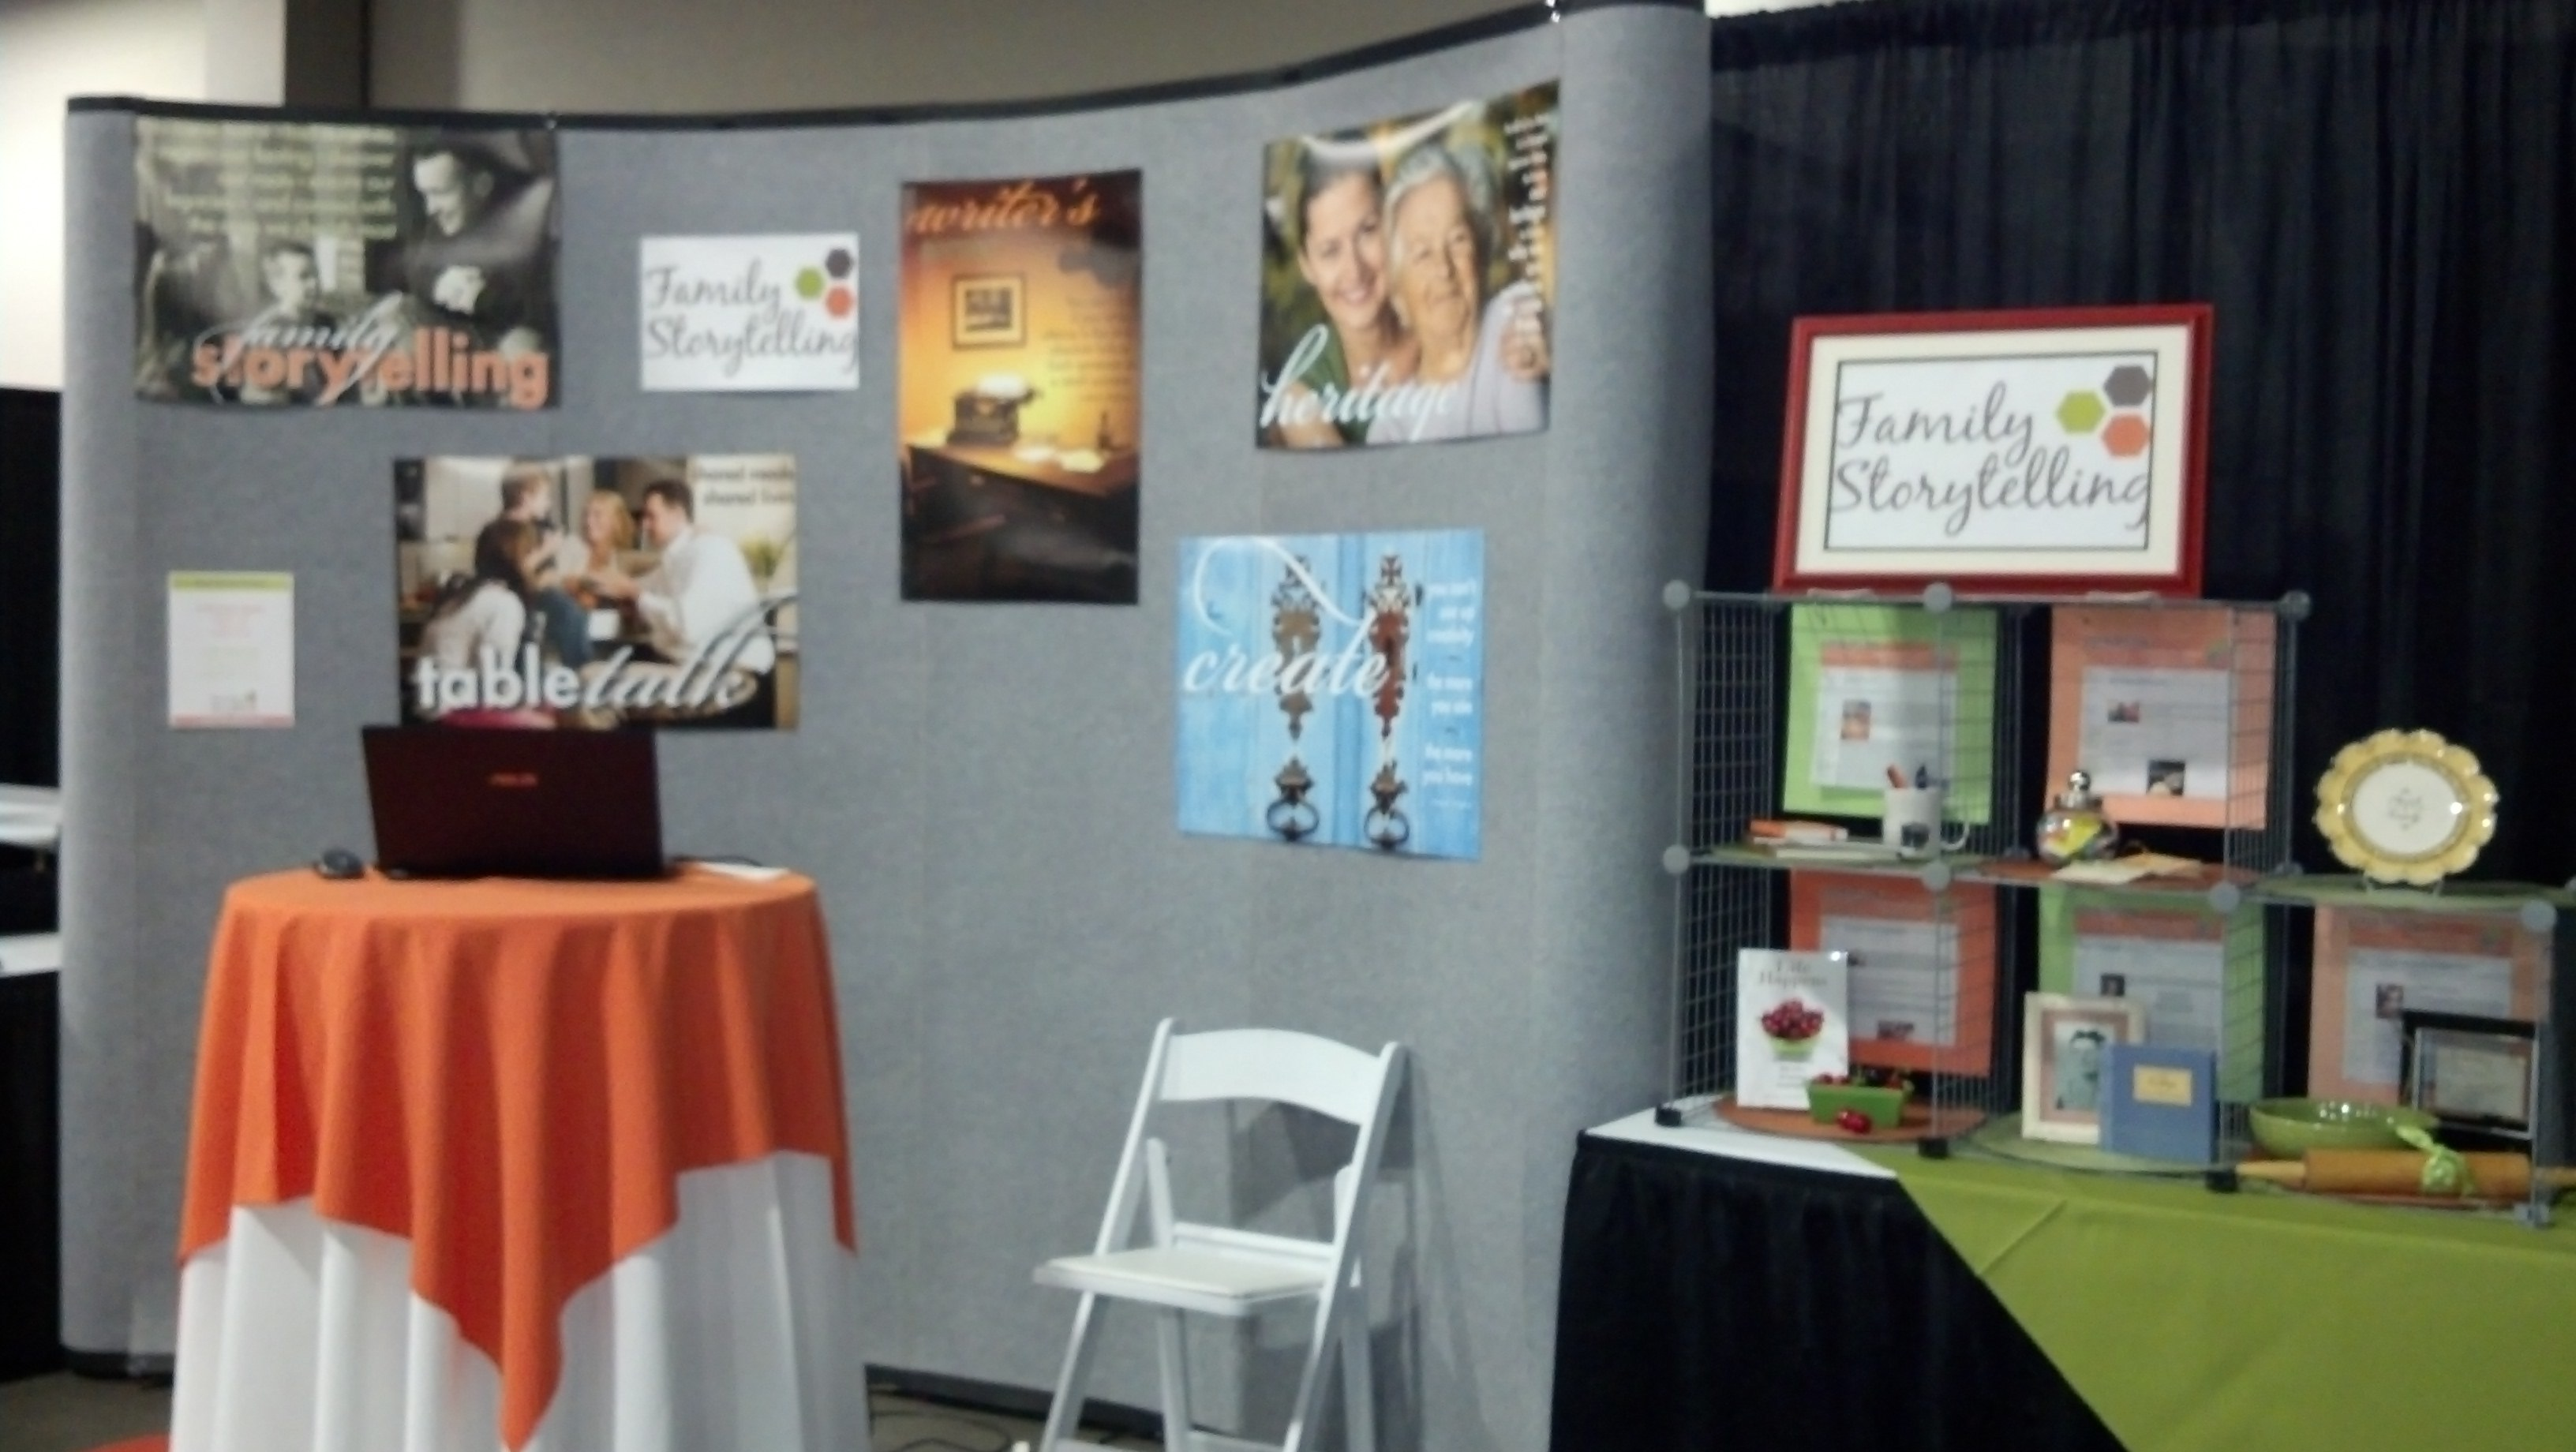 Family Storytelling, RootsTech Booth